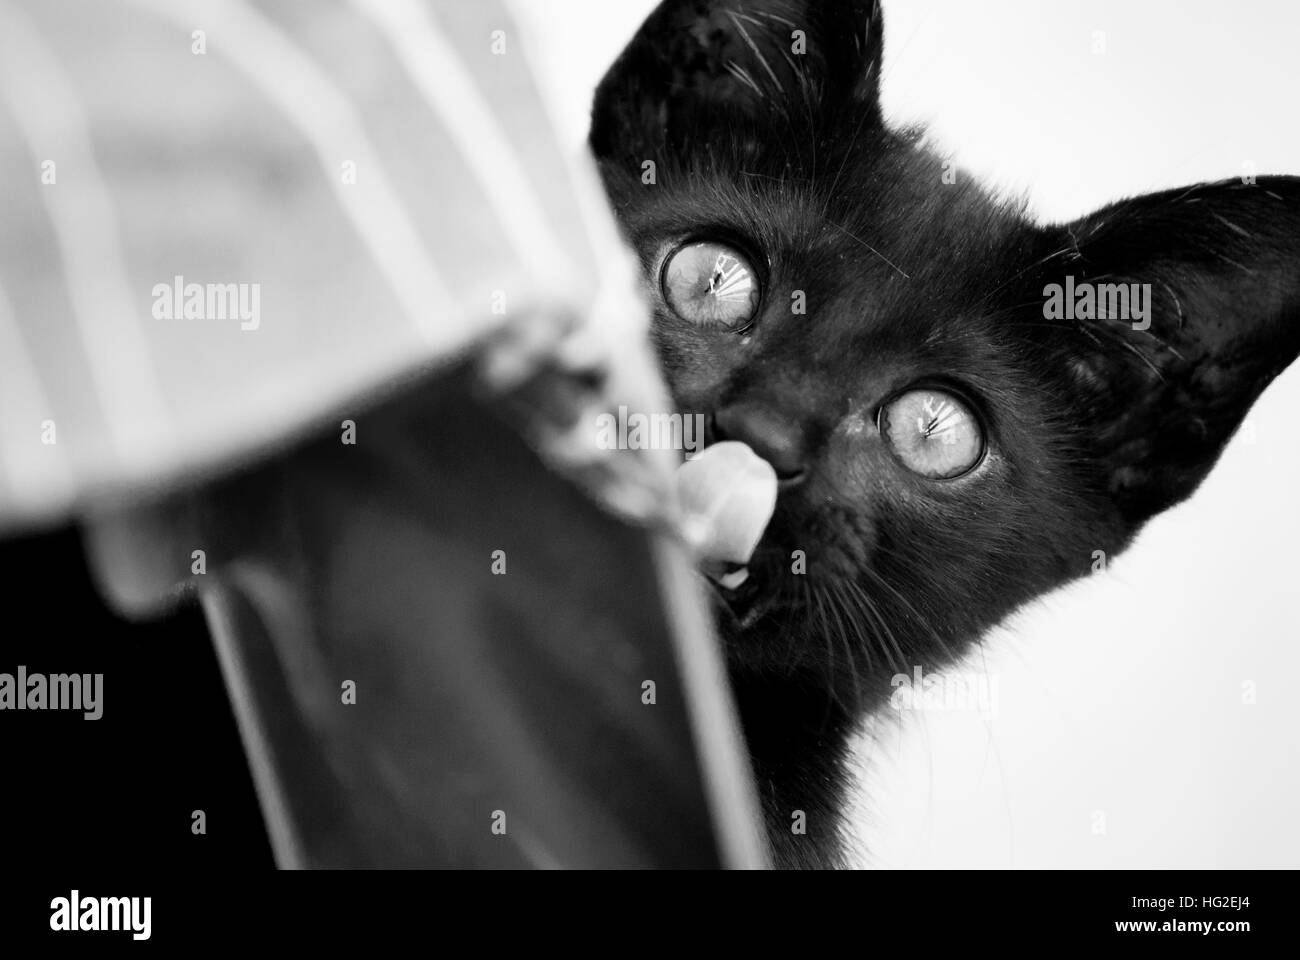 The Funny cat - Stock Image